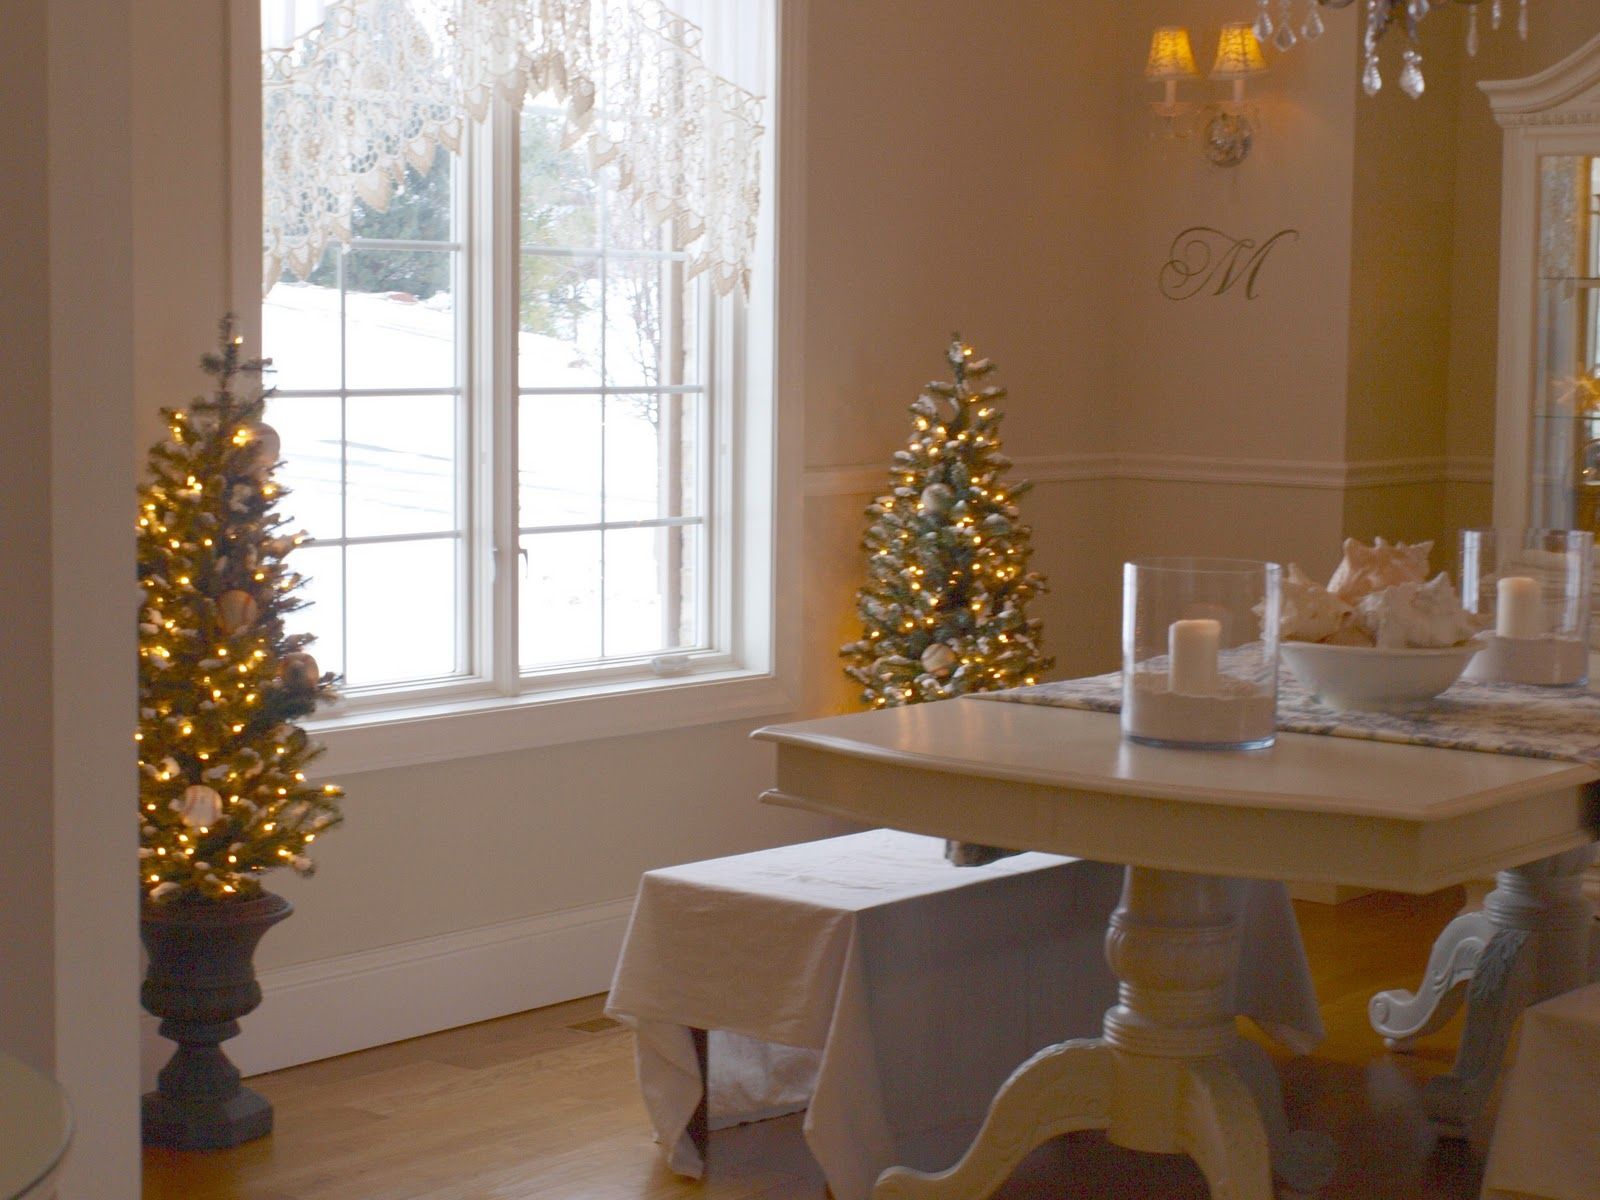 My Home: Christmas 2010